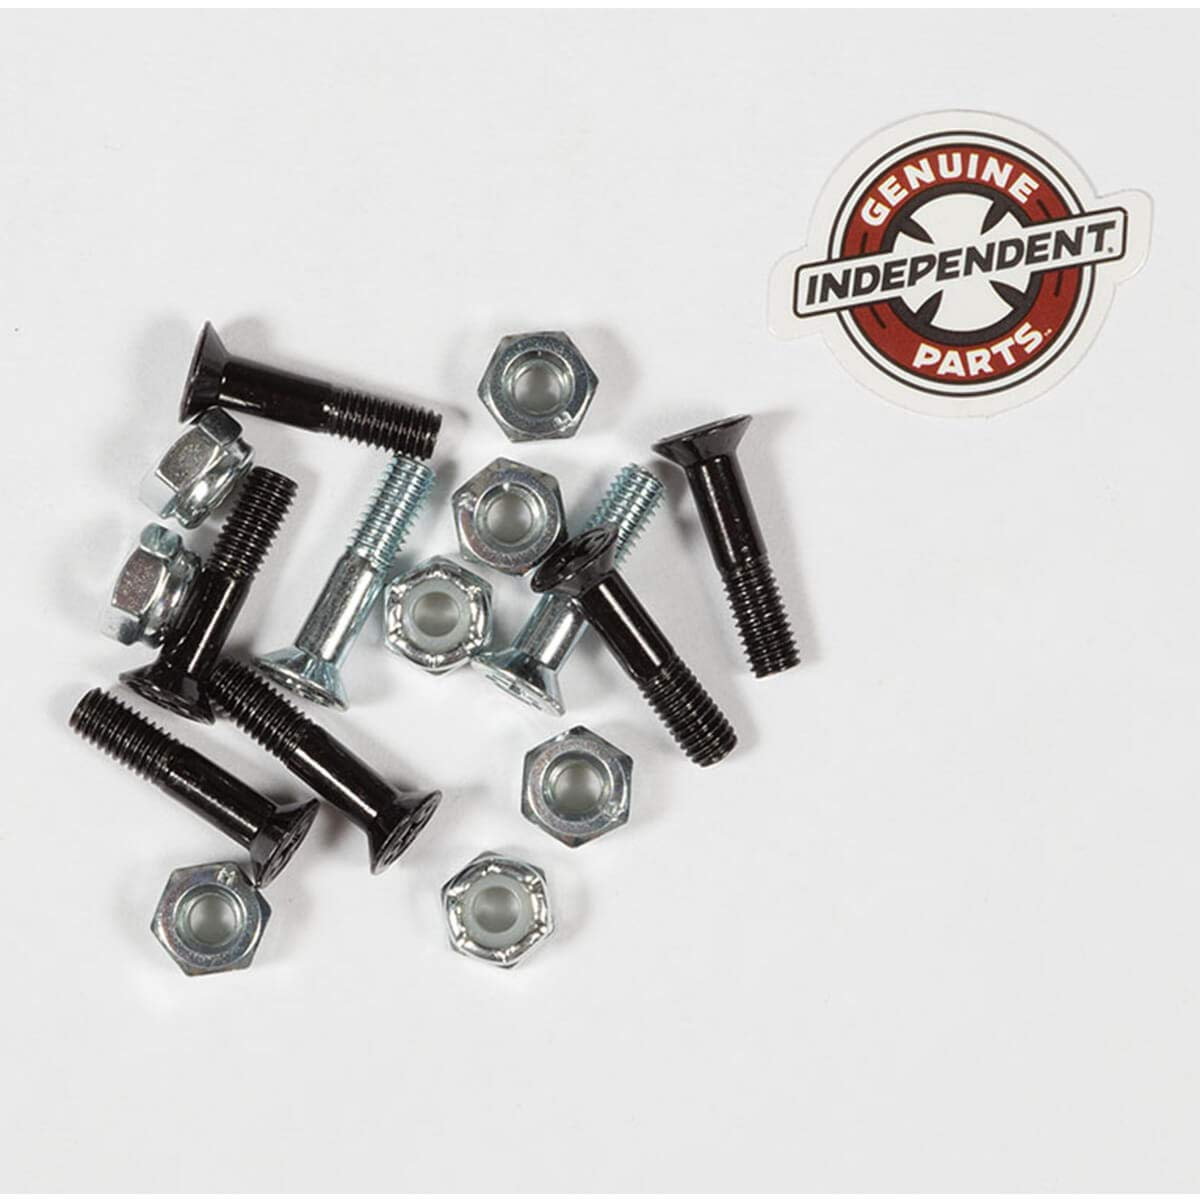 7//8 Silver Standard Skateboard Hardware Sets Independent Cross Phillips Head Black